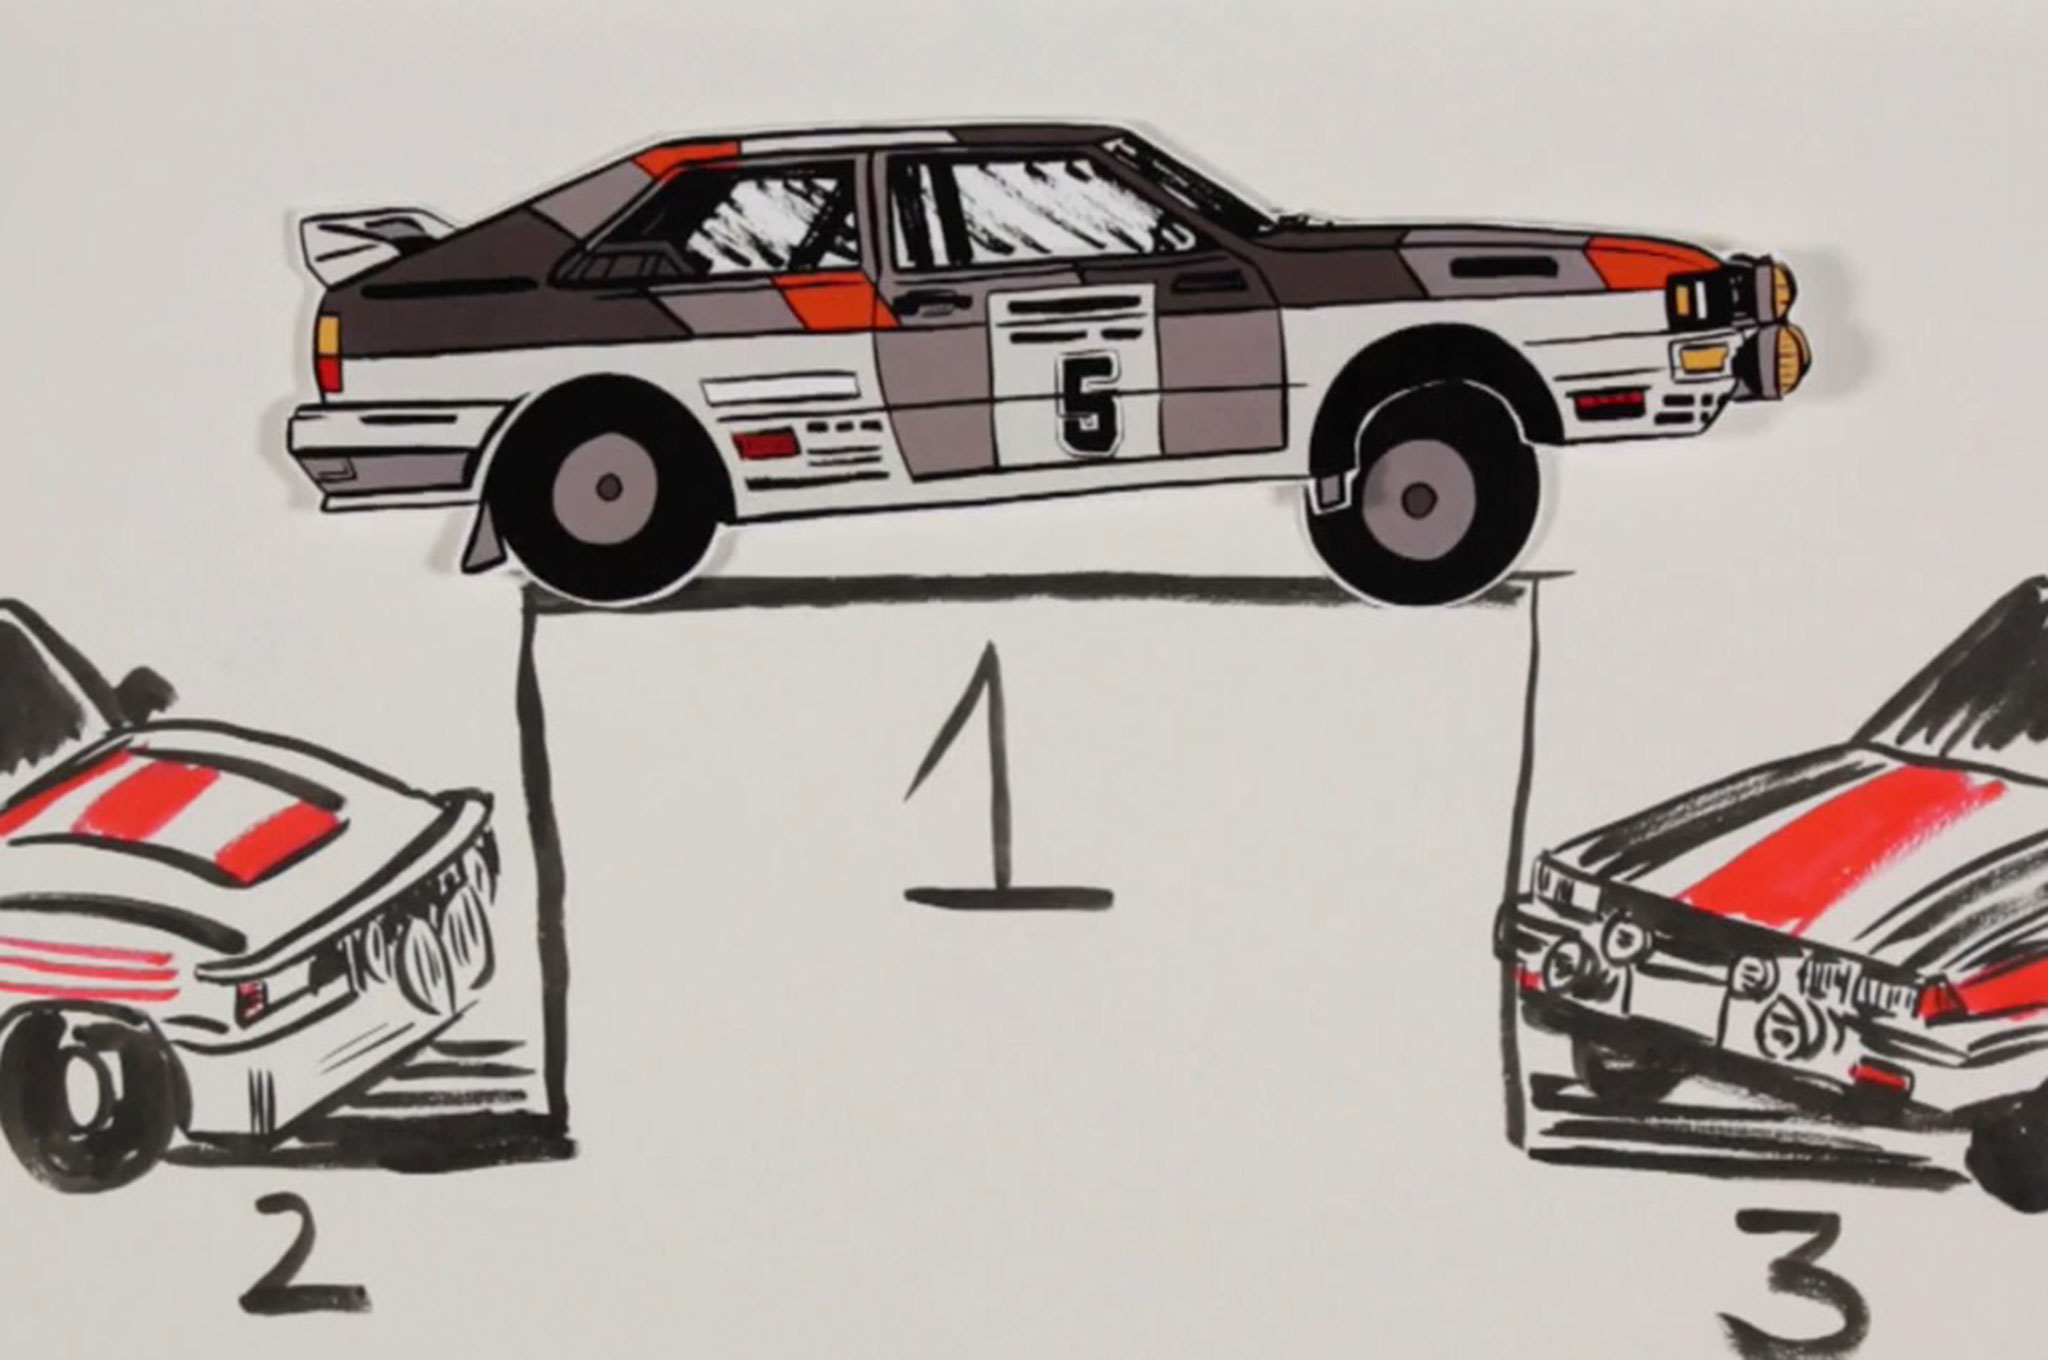 History of the World Rally Championship Explained in 3 Minutes